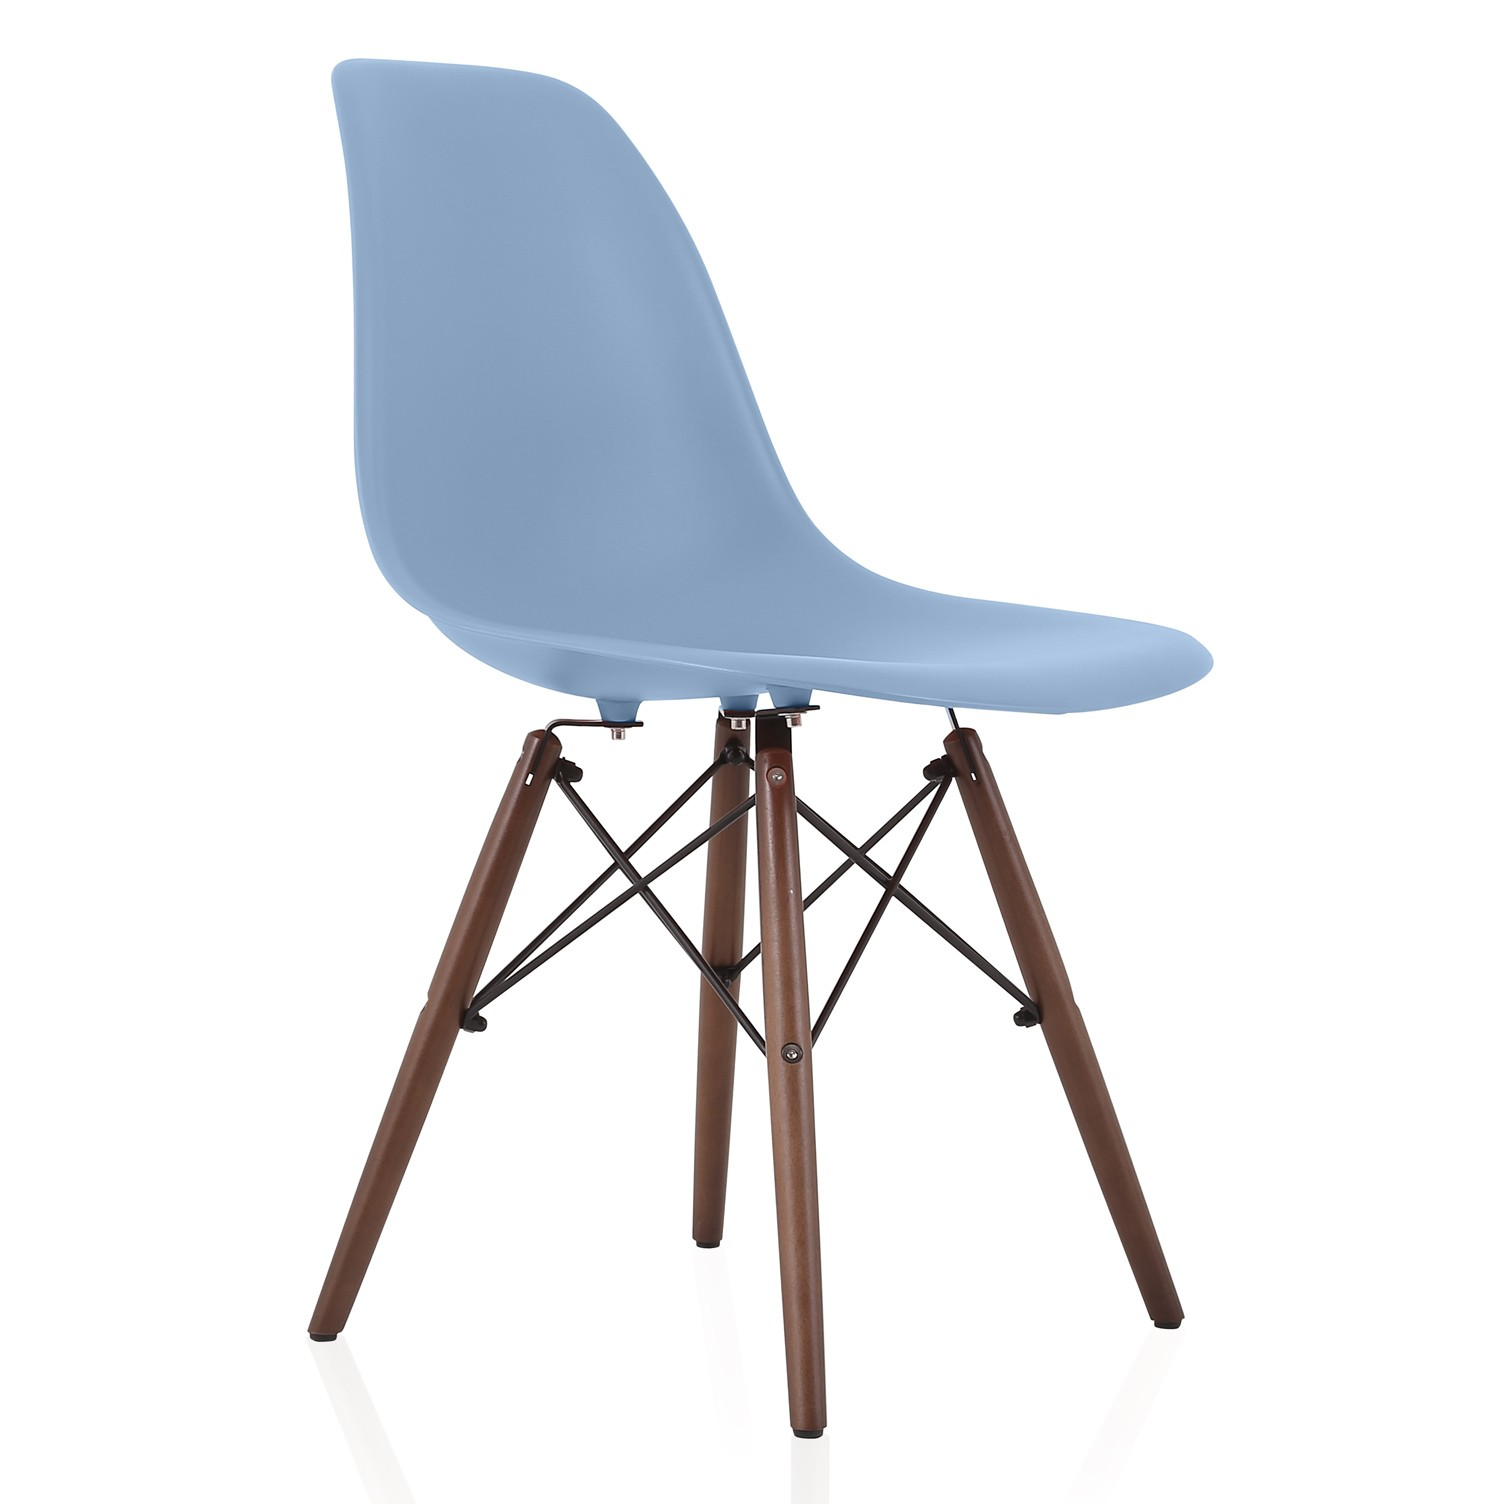 Chair Price Nature Series Slate Blue Dsw Molded Plastic Dining Side Chair Dark Walnut Wood Eiffel Legs